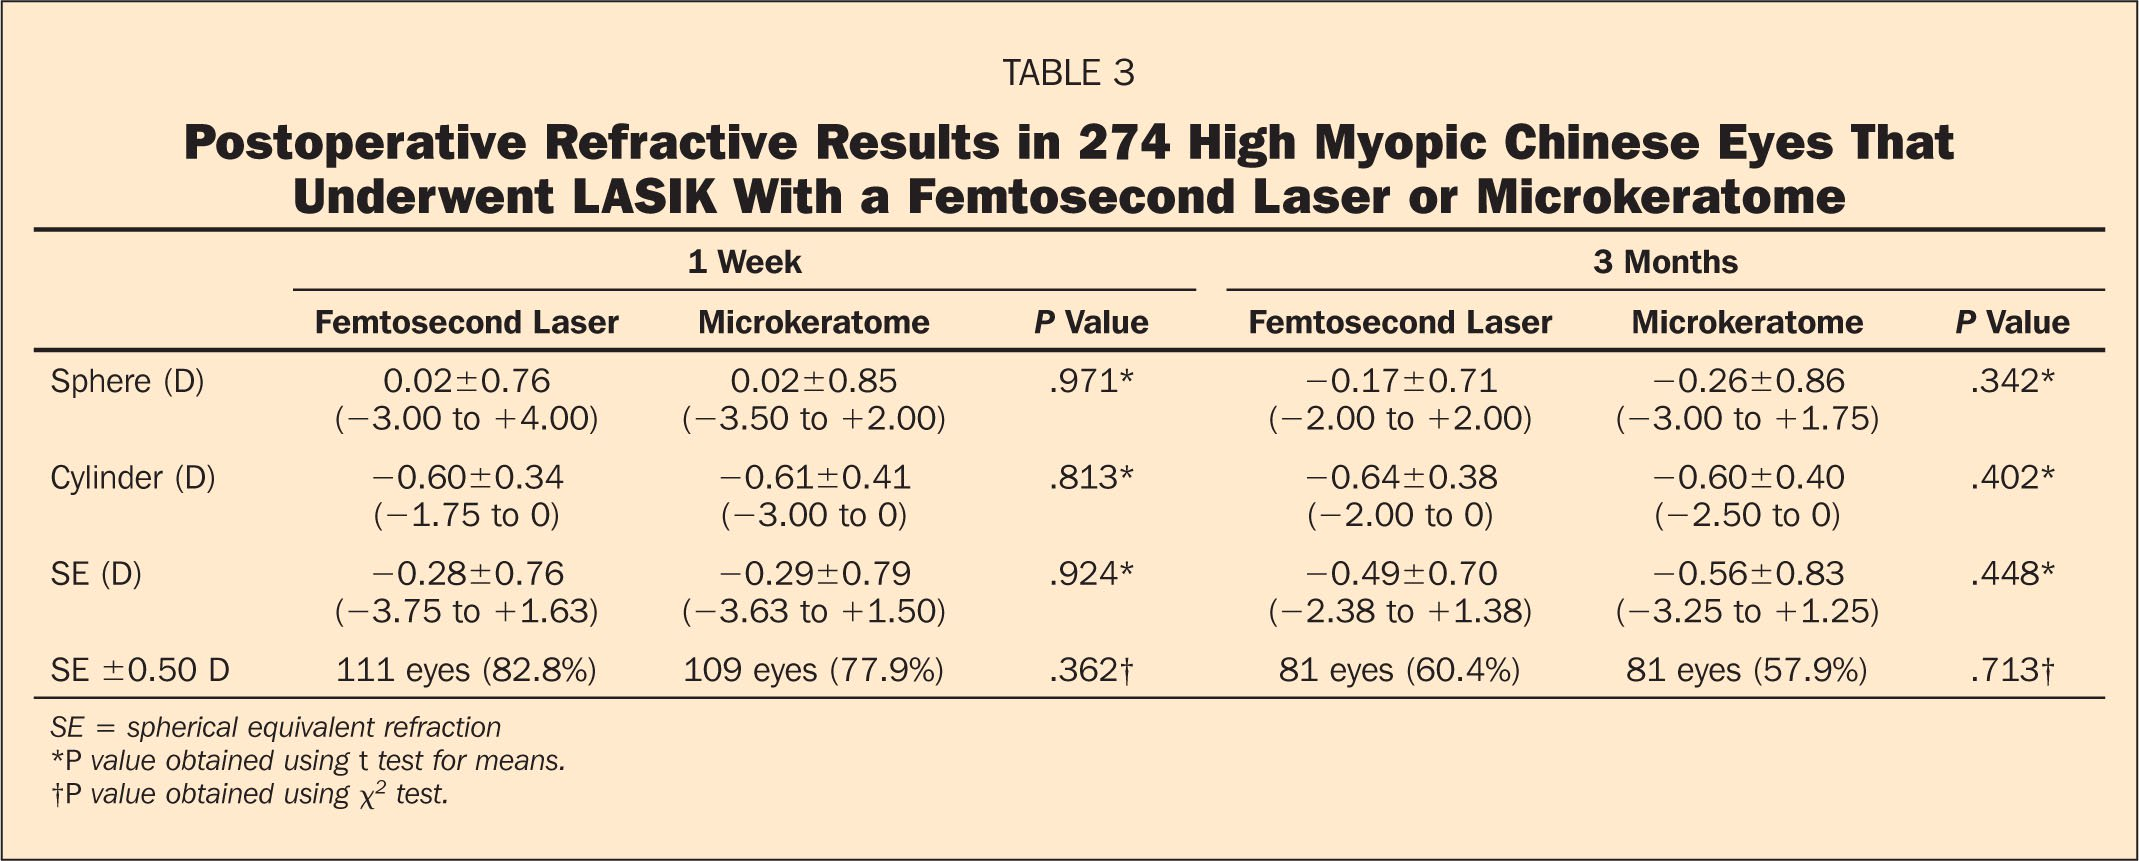 Postoperative Refractive Results in 274 High Myopic Chinese Eyes that Underwent LASIK with a Femtosecond Laser or Microkeratome